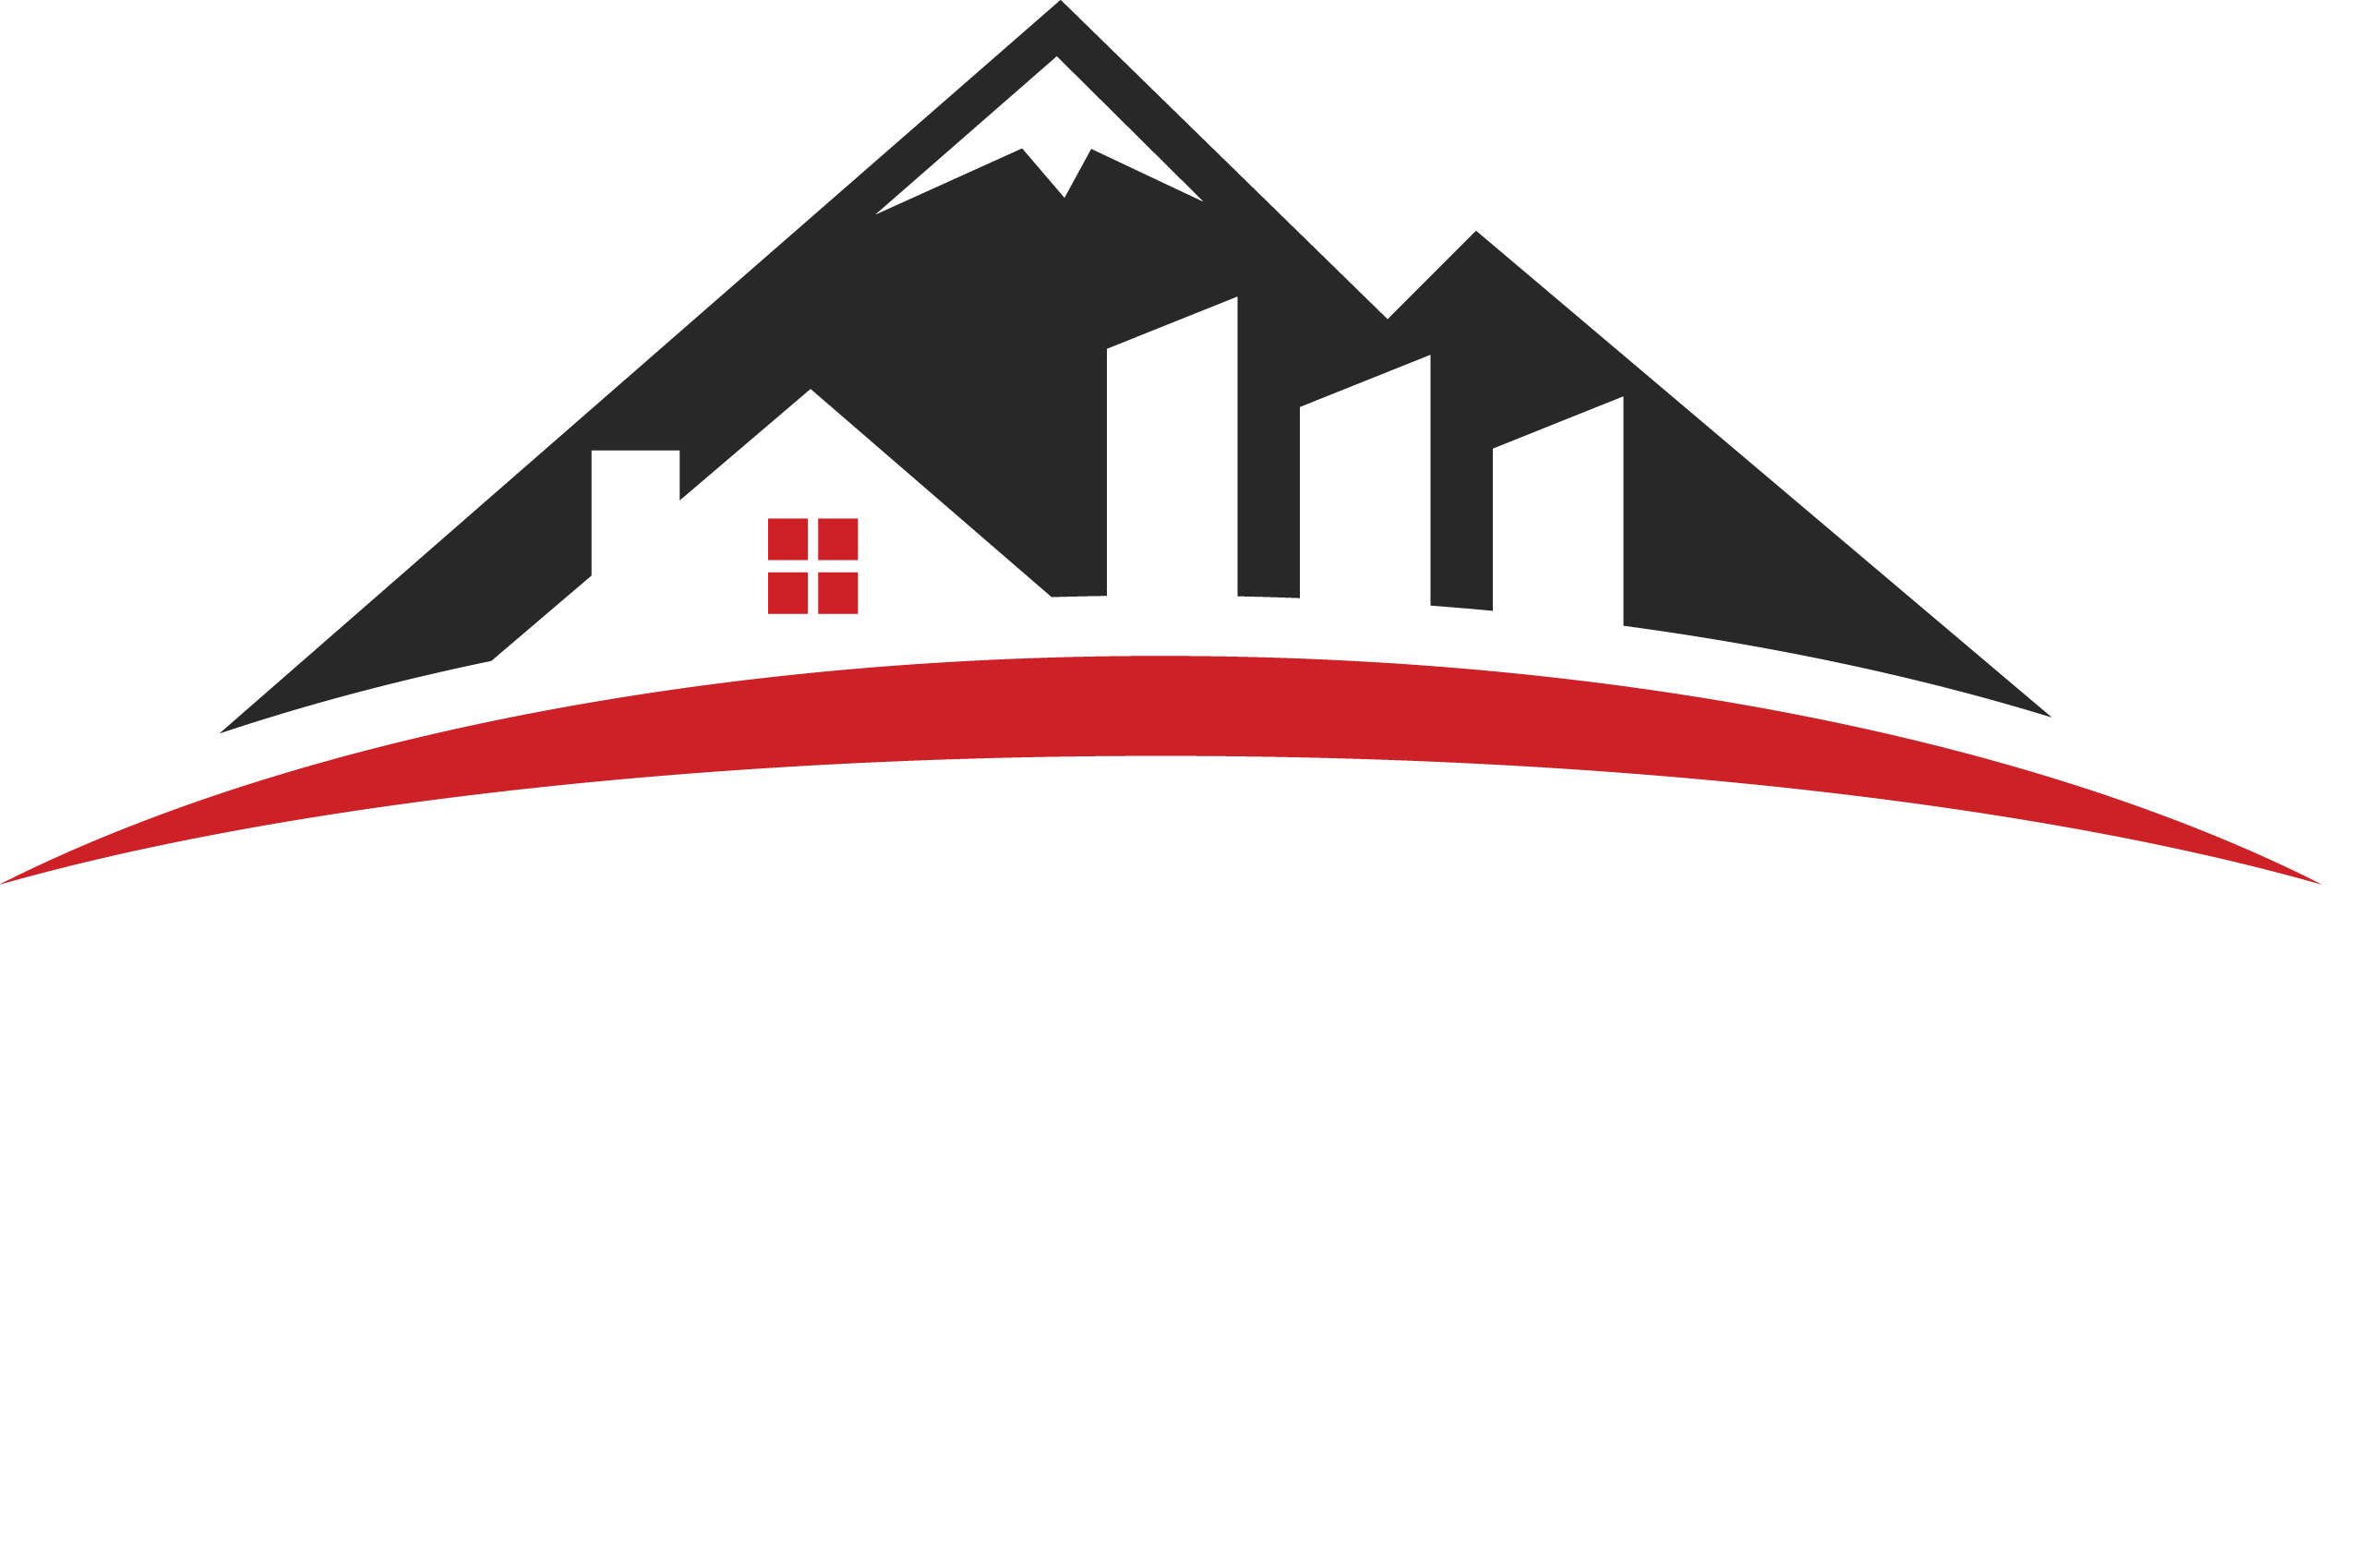 North Georgia Contracting